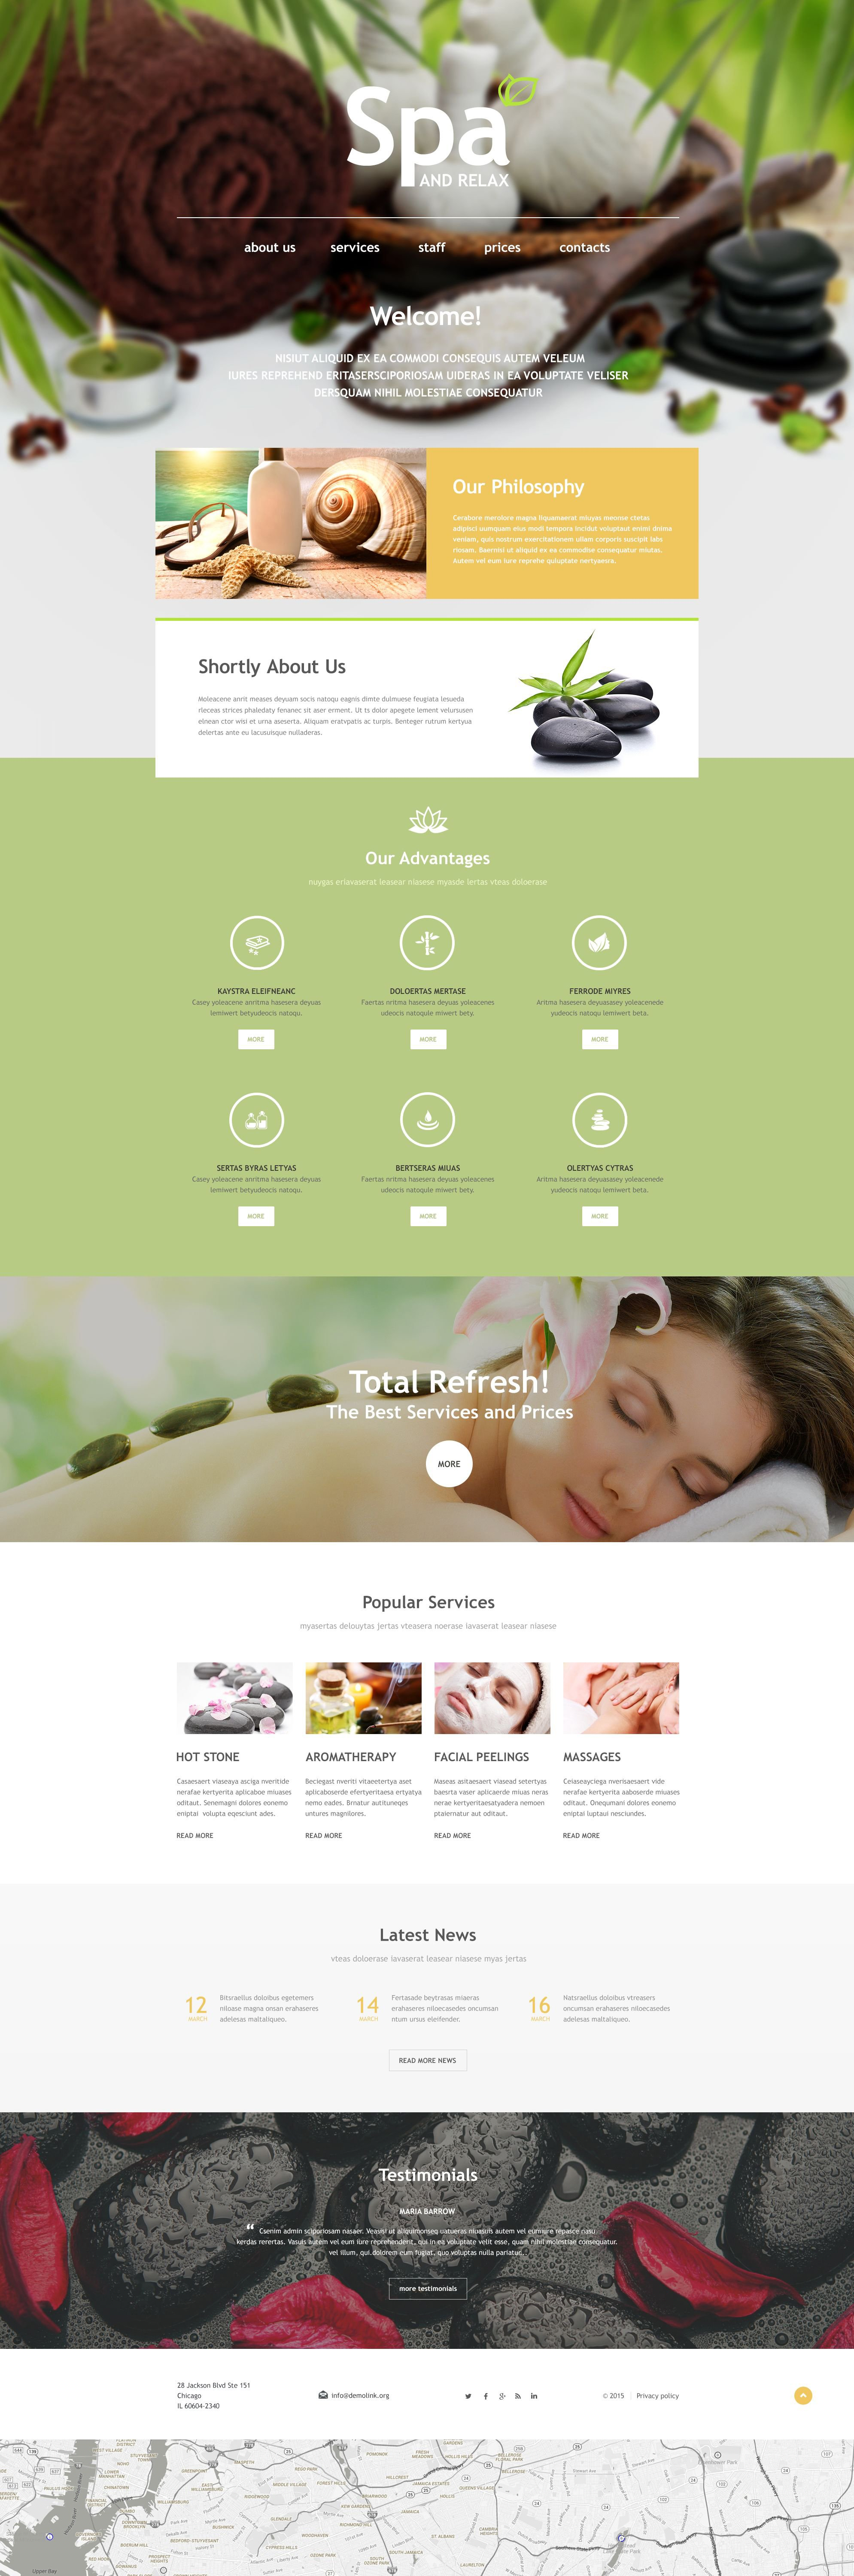 Spa Accessories Muse Template